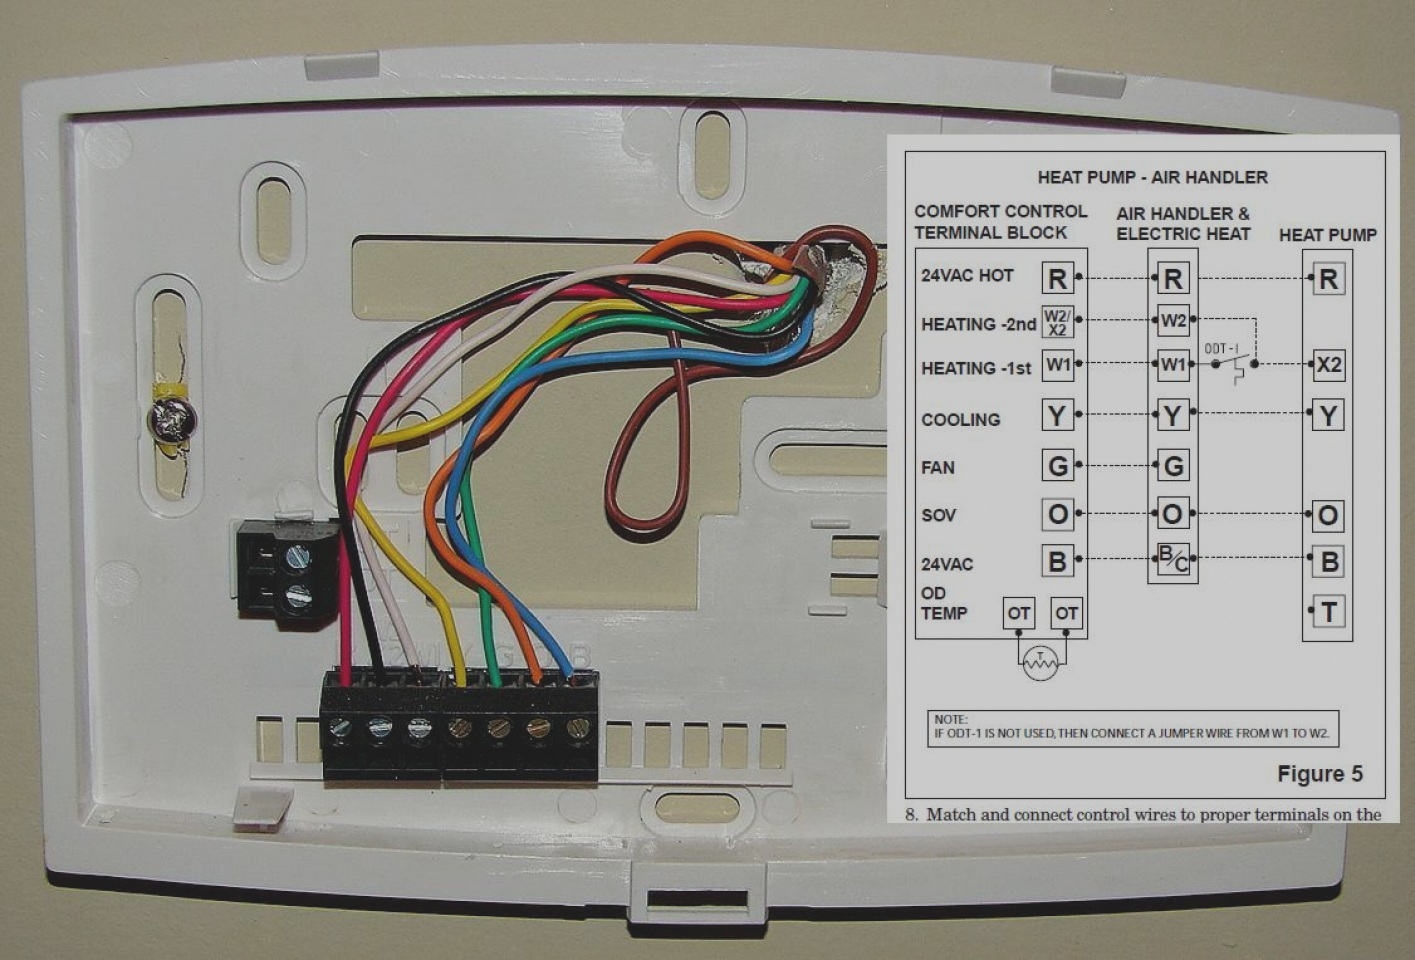 honeywell th5220d1003 wiring diagram Download-27 New Wiring Diagram For Honeywell Thermostat Th5220d1003 Collection 5-d